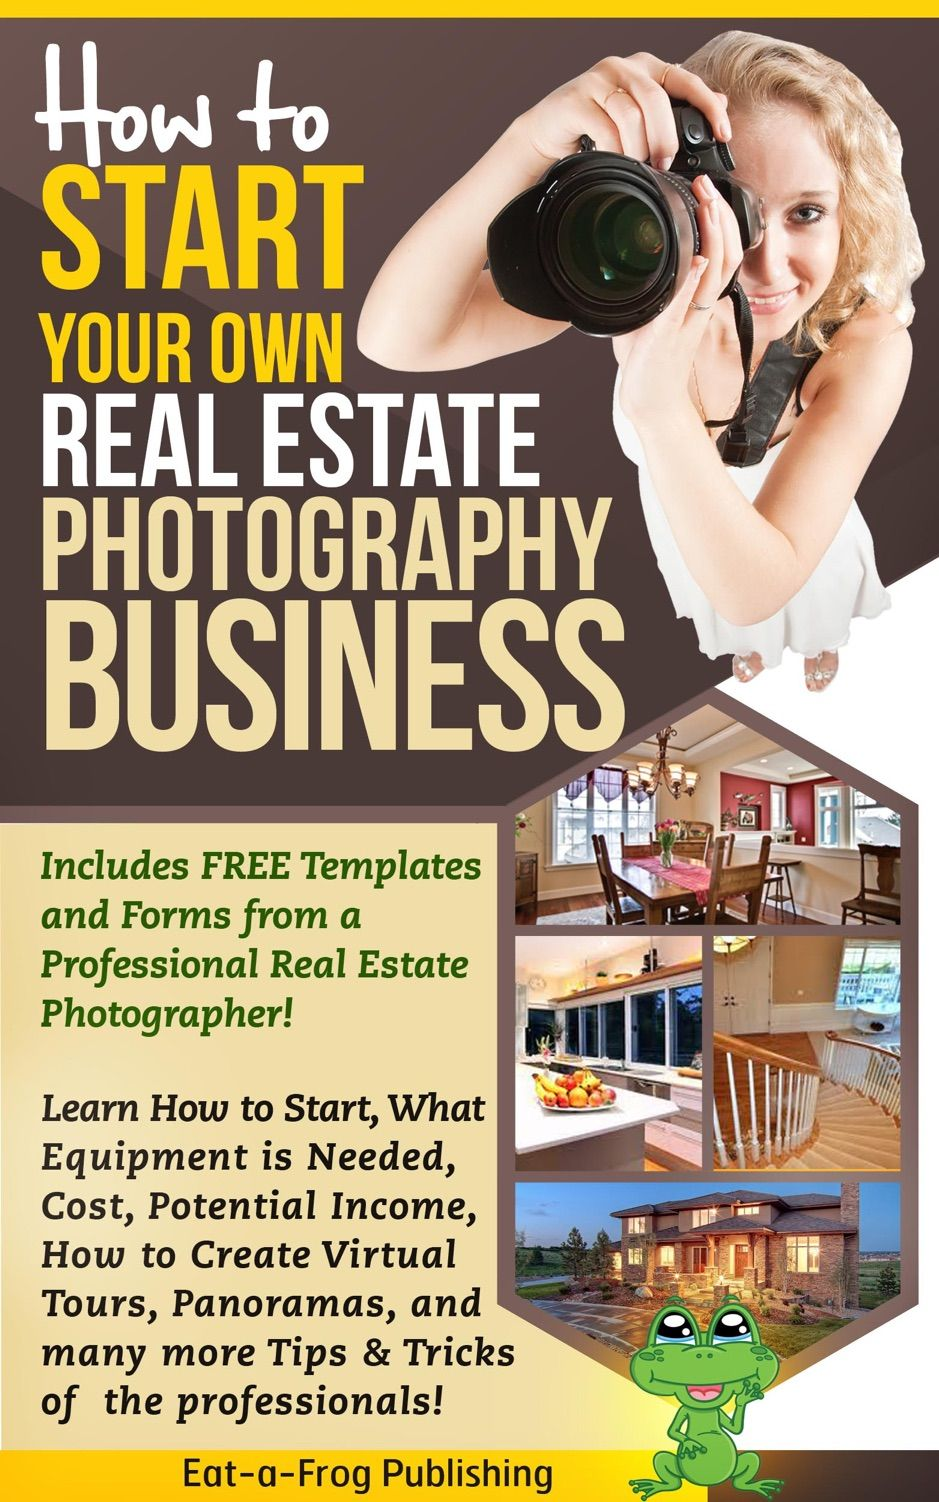 ‎How to Start Your Own Real Estate Photography Business